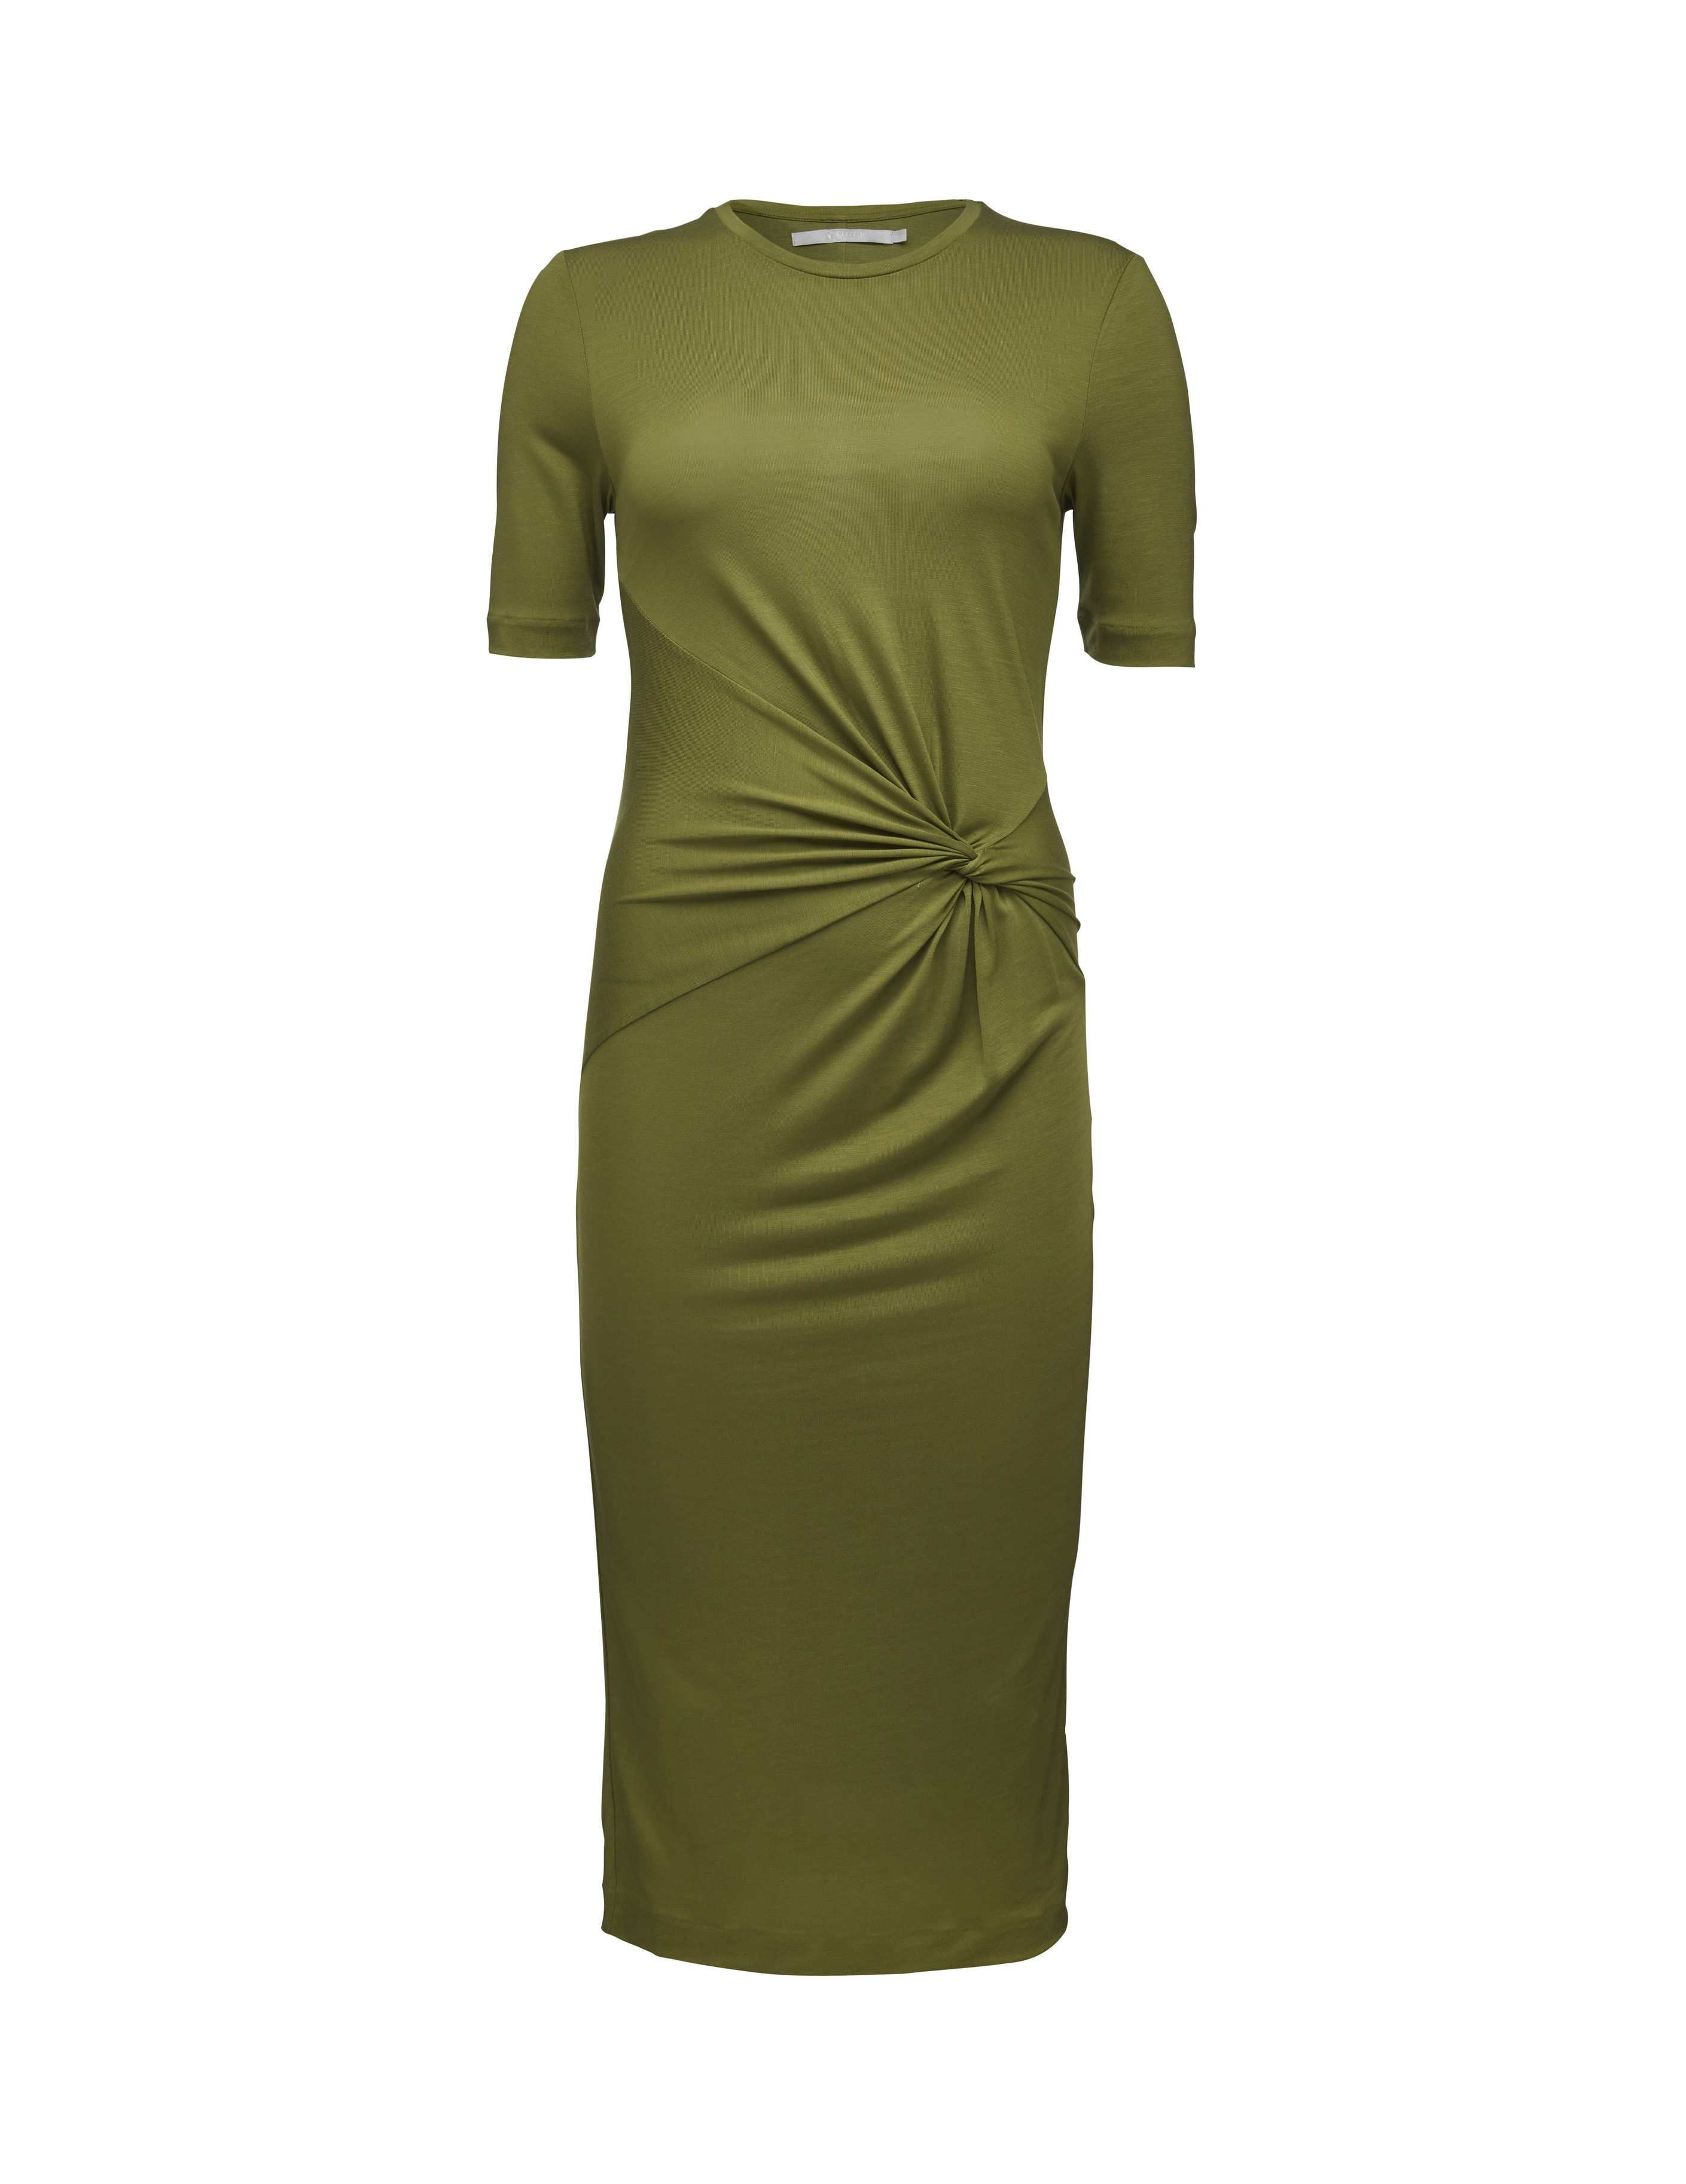 Womenus shortsleeved dress in heavy lyocell features offcentre